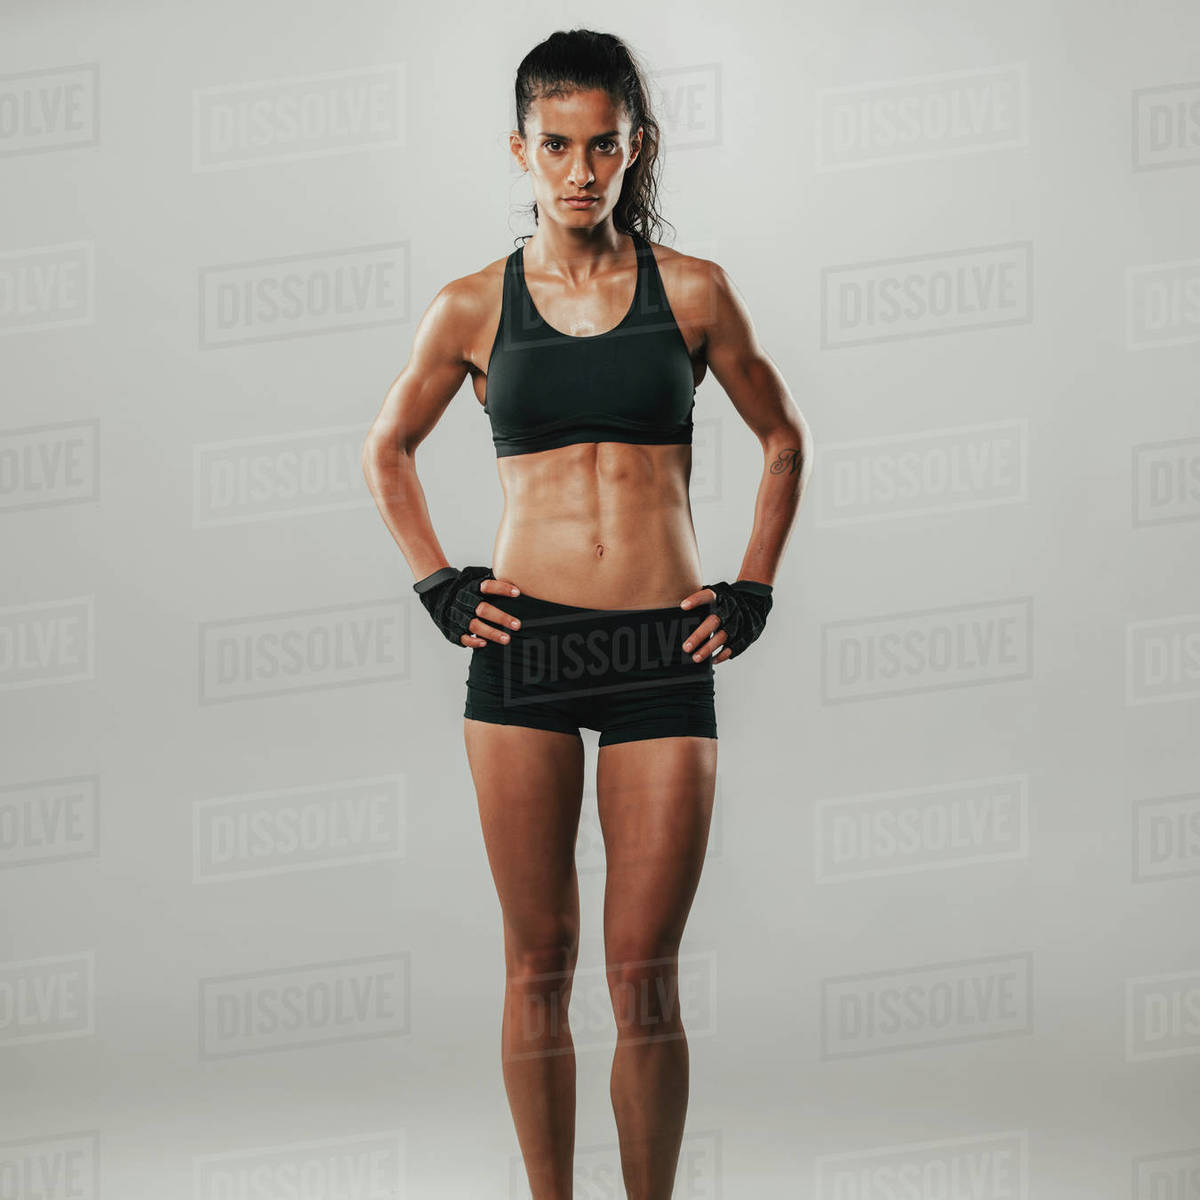 Fit Healthy Young Woman With A Strong Muscular Body Standing With Her Hands On Her Hips Looking Seriously At The Camera In Black Sportswear Stock Photo Dissolve Any posts or comments that don't follow. fit healthy young woman with a strong muscular body standing d2012 96 084